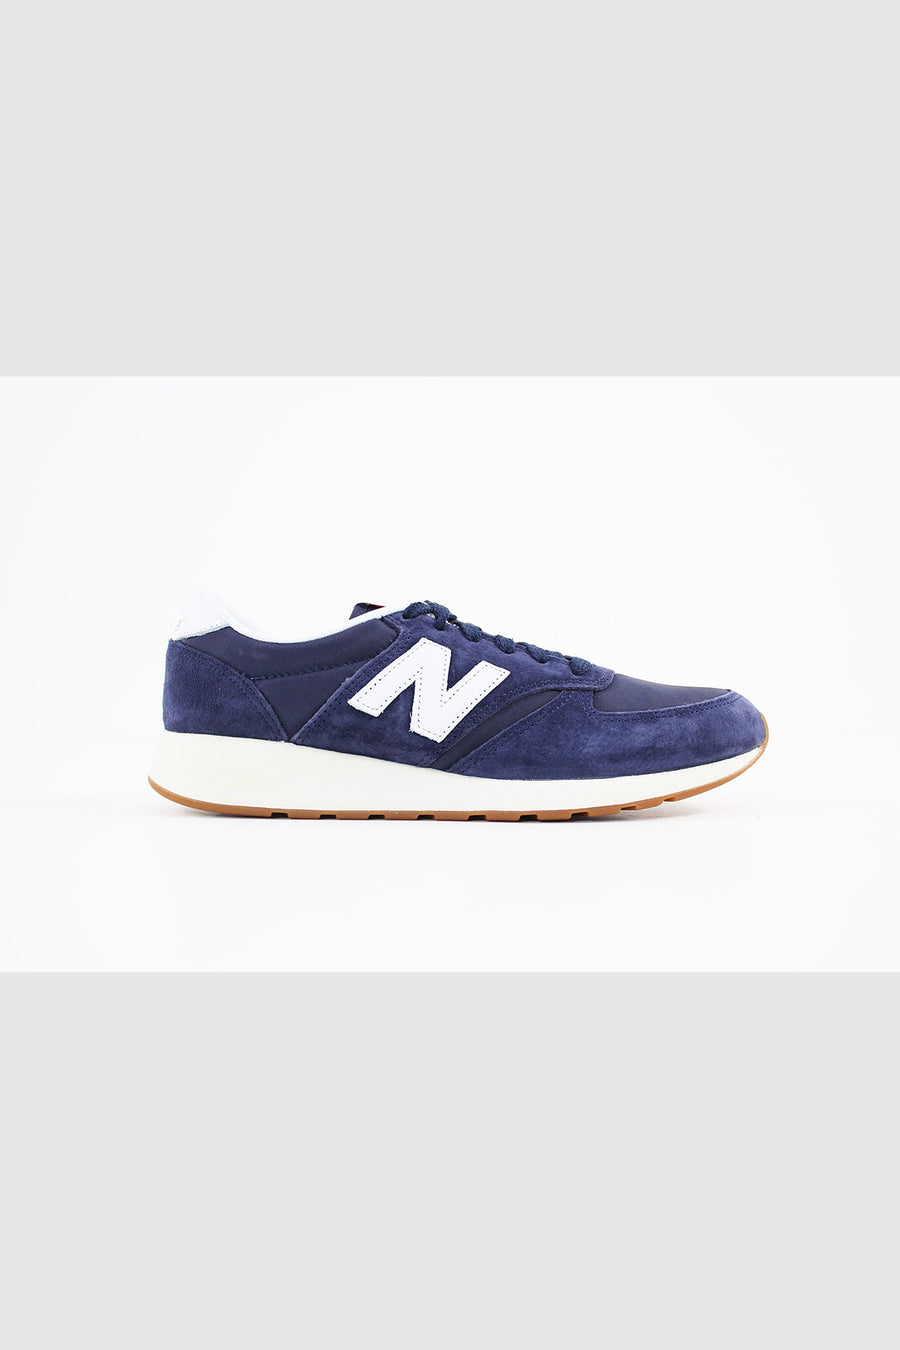 New Balance - MRL420SQ (NAVY)